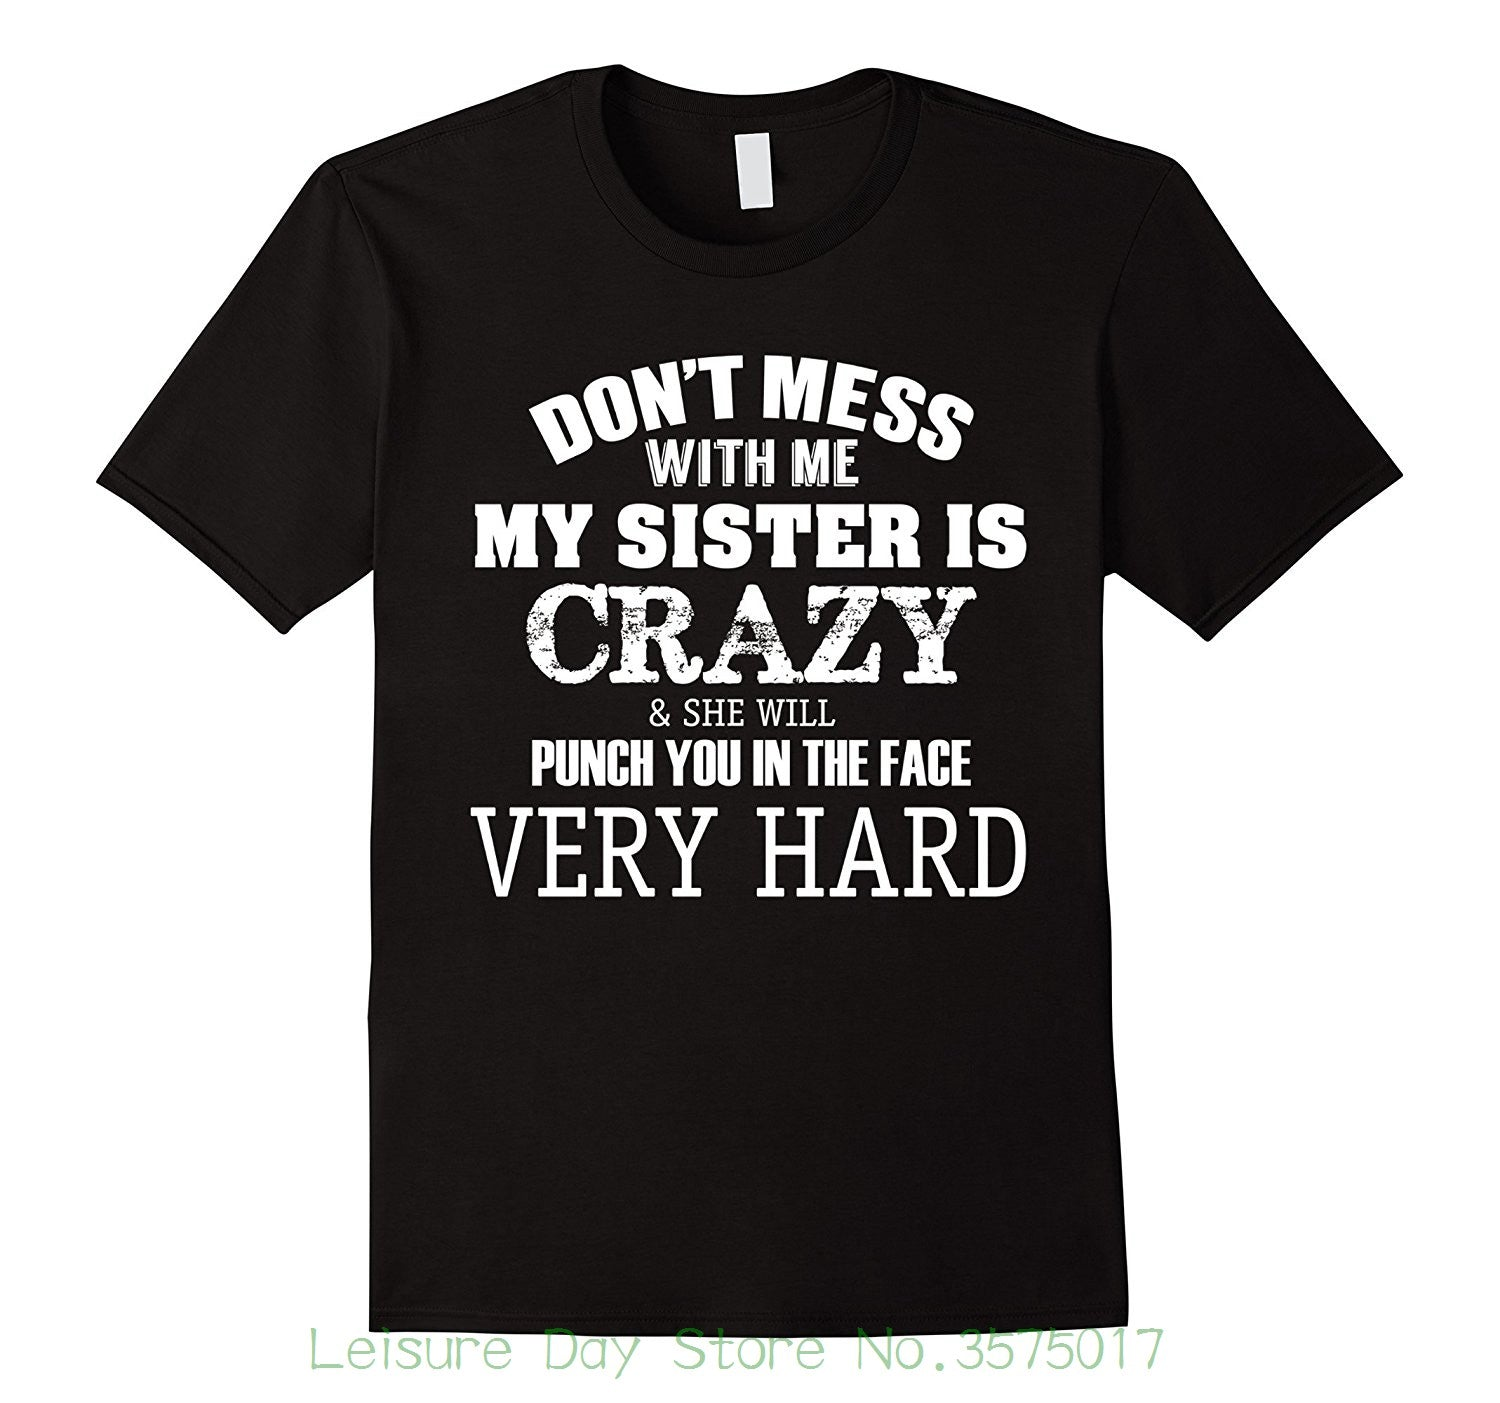 Don't Mess With Me My Sister Is Crazy & She Will Punch You In The Face Very Hard - Siblings - Unisex T-shirts - Cozzoo